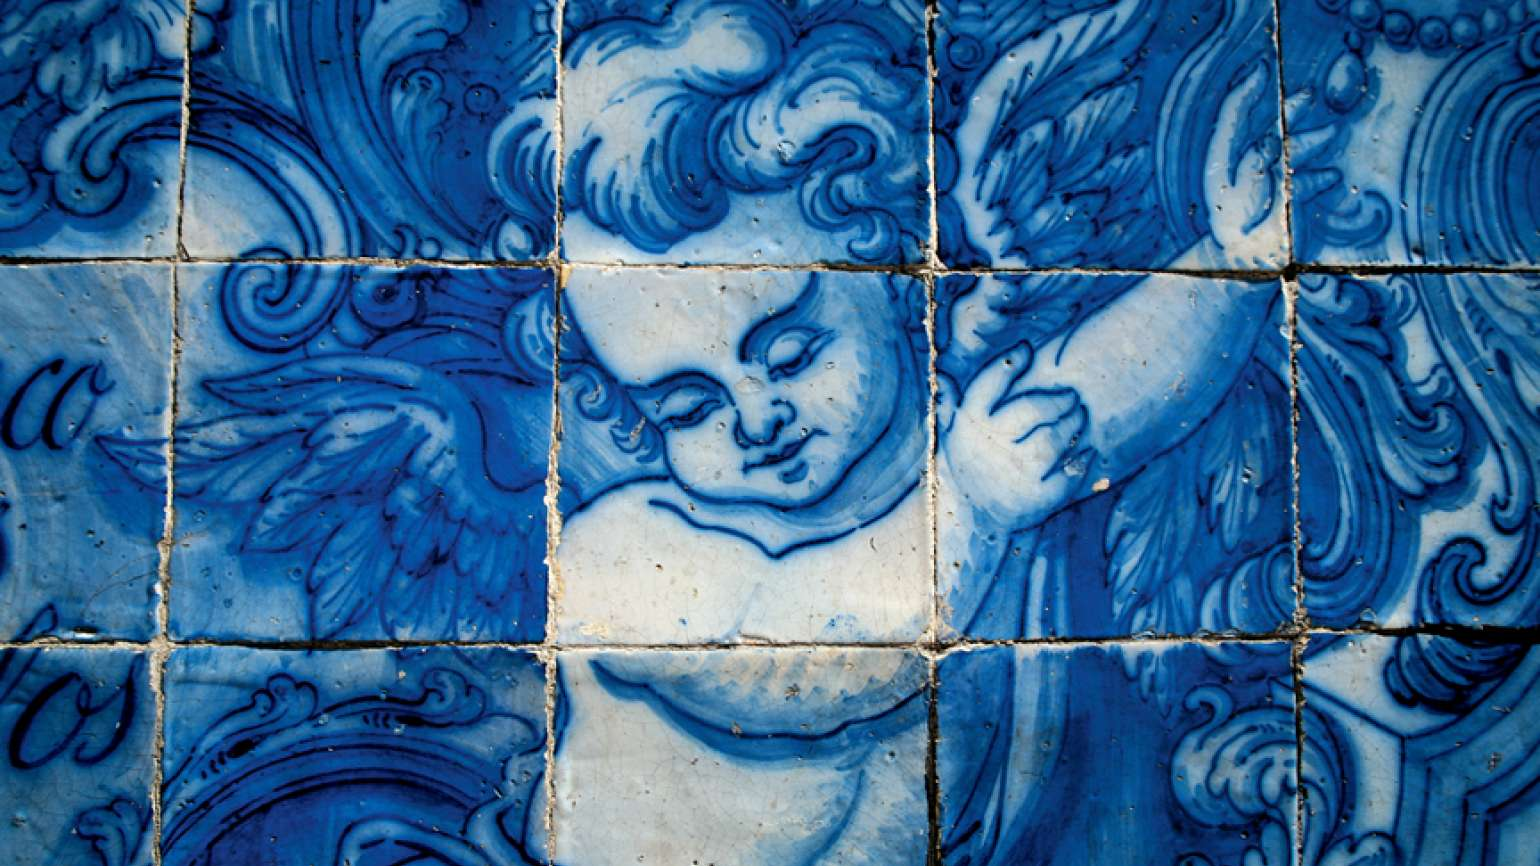 Angels around the world. An angel in Portuguese tile.